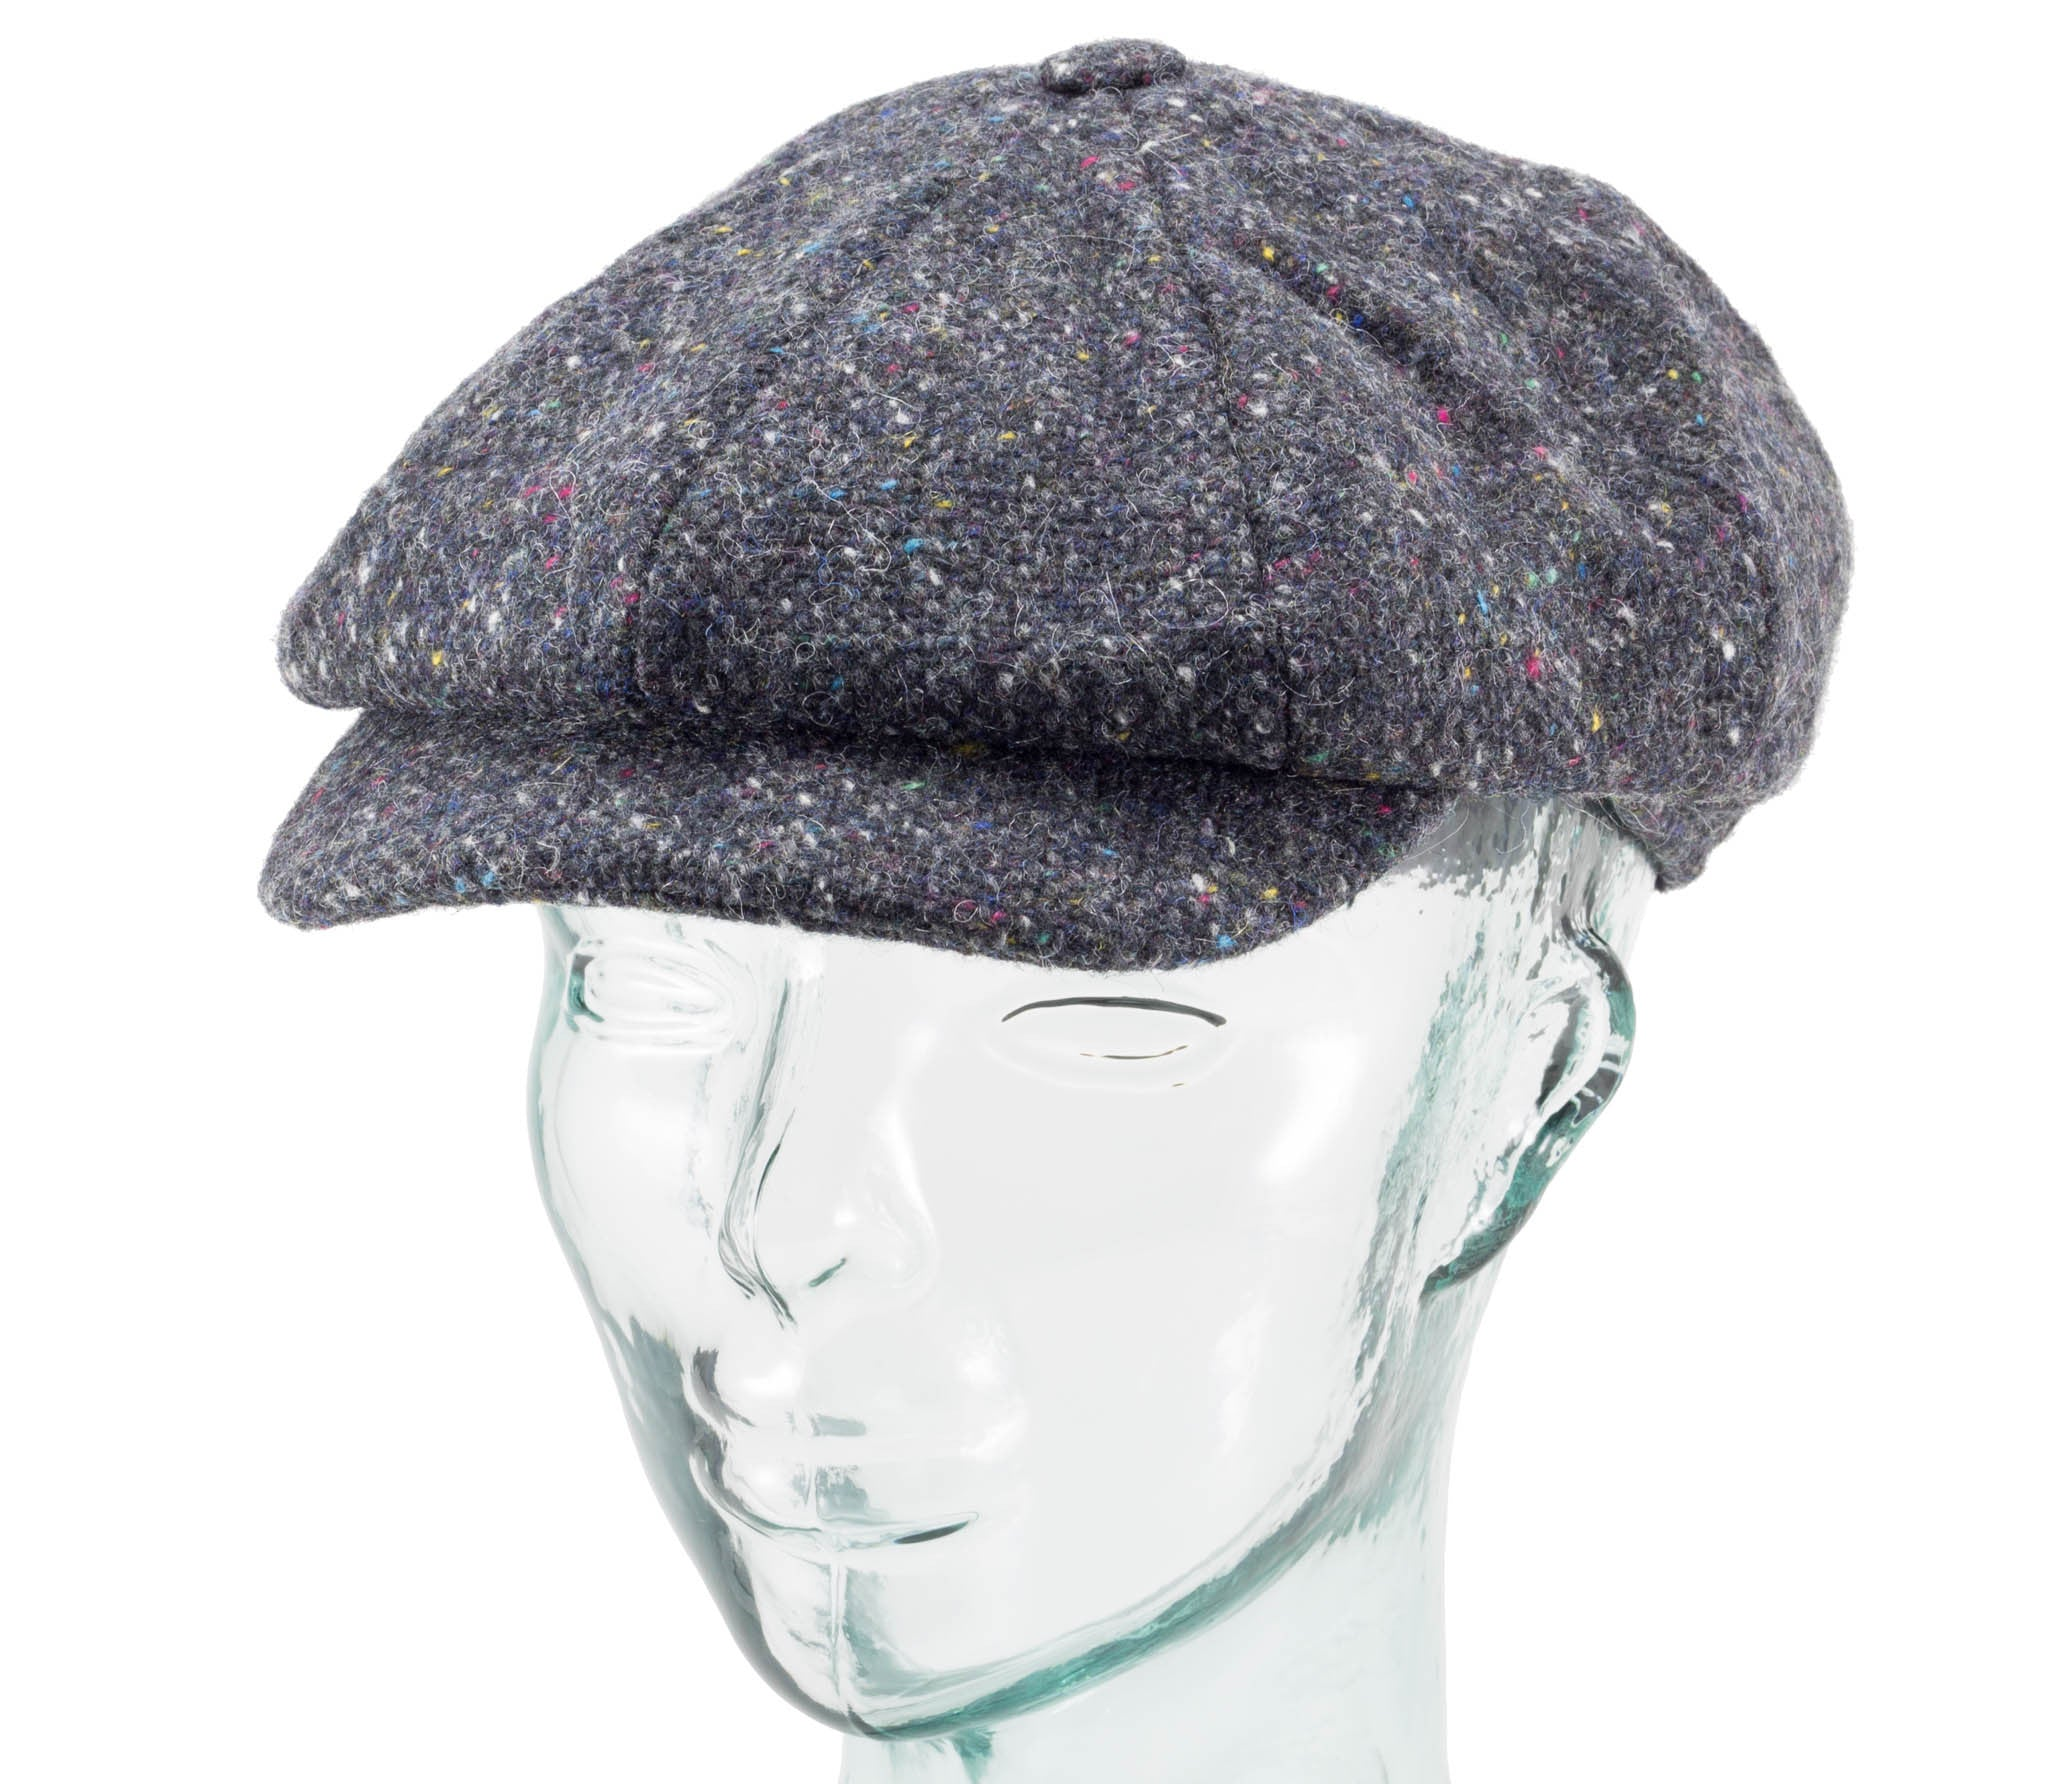 Charcoal newsboy cap from realirish.com and made by hanna hats, side view.